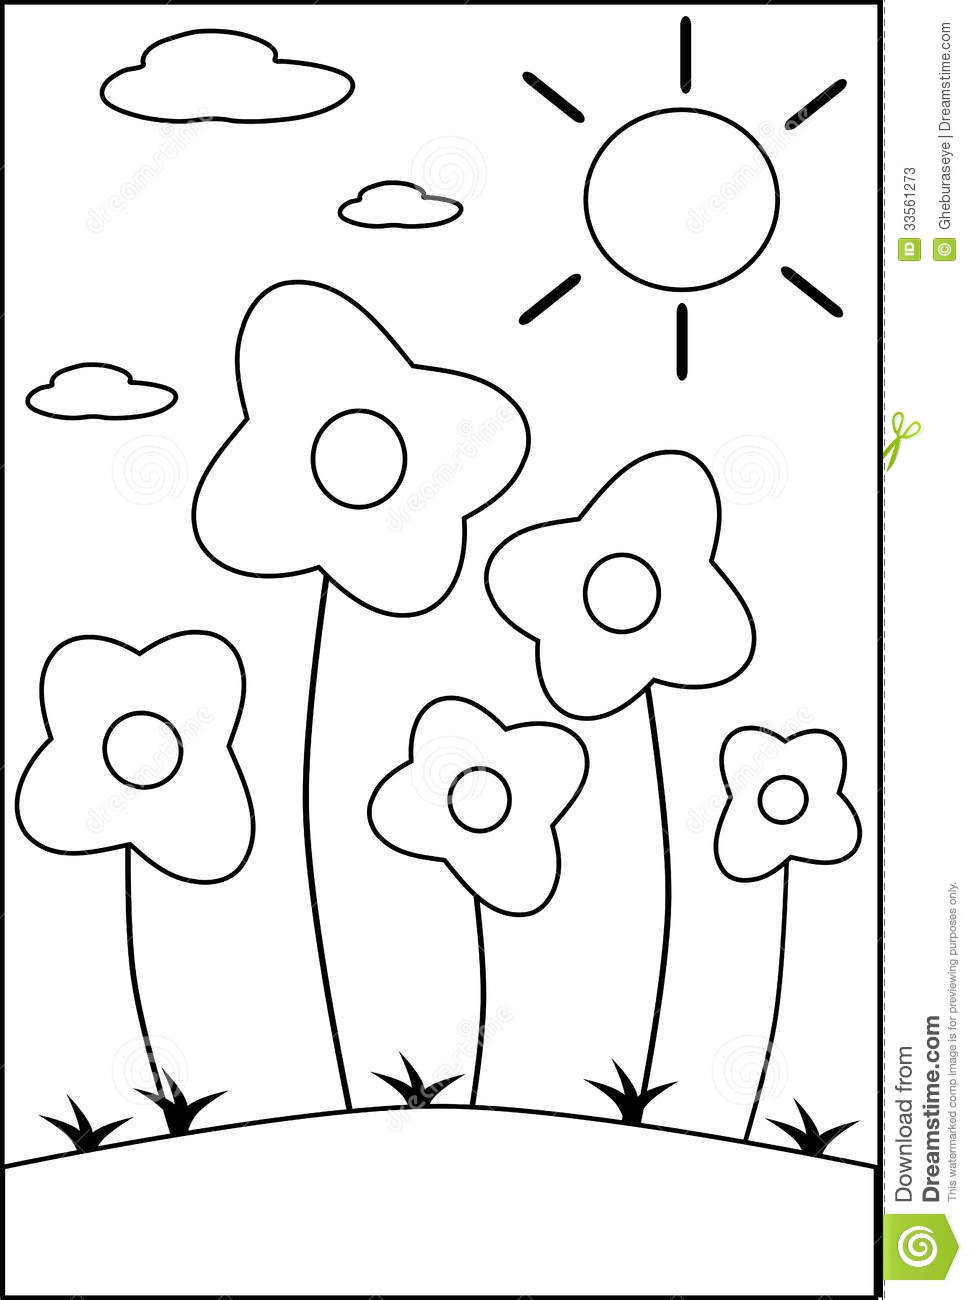 coloring flower cartoon images coloring flowers stock photos image 33561273 coloring flower images cartoon